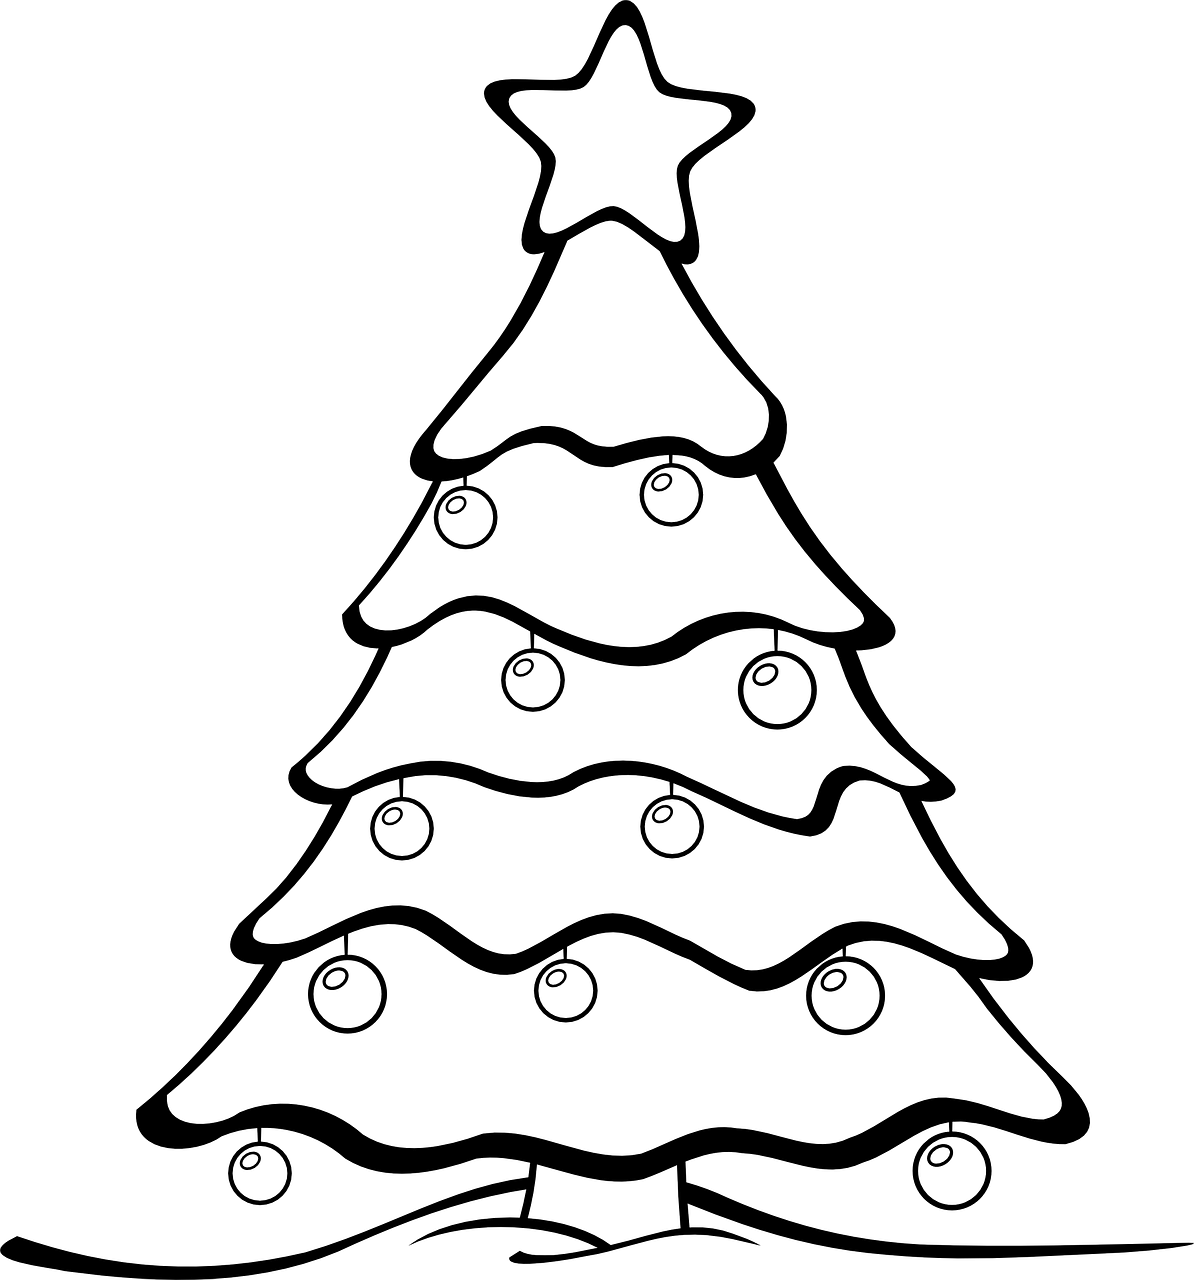 Colour And Design Your Own Christmas Tree Printables Christmas Tree Drawing Christmas Tree Coloring Page Christmas Coloring Pages